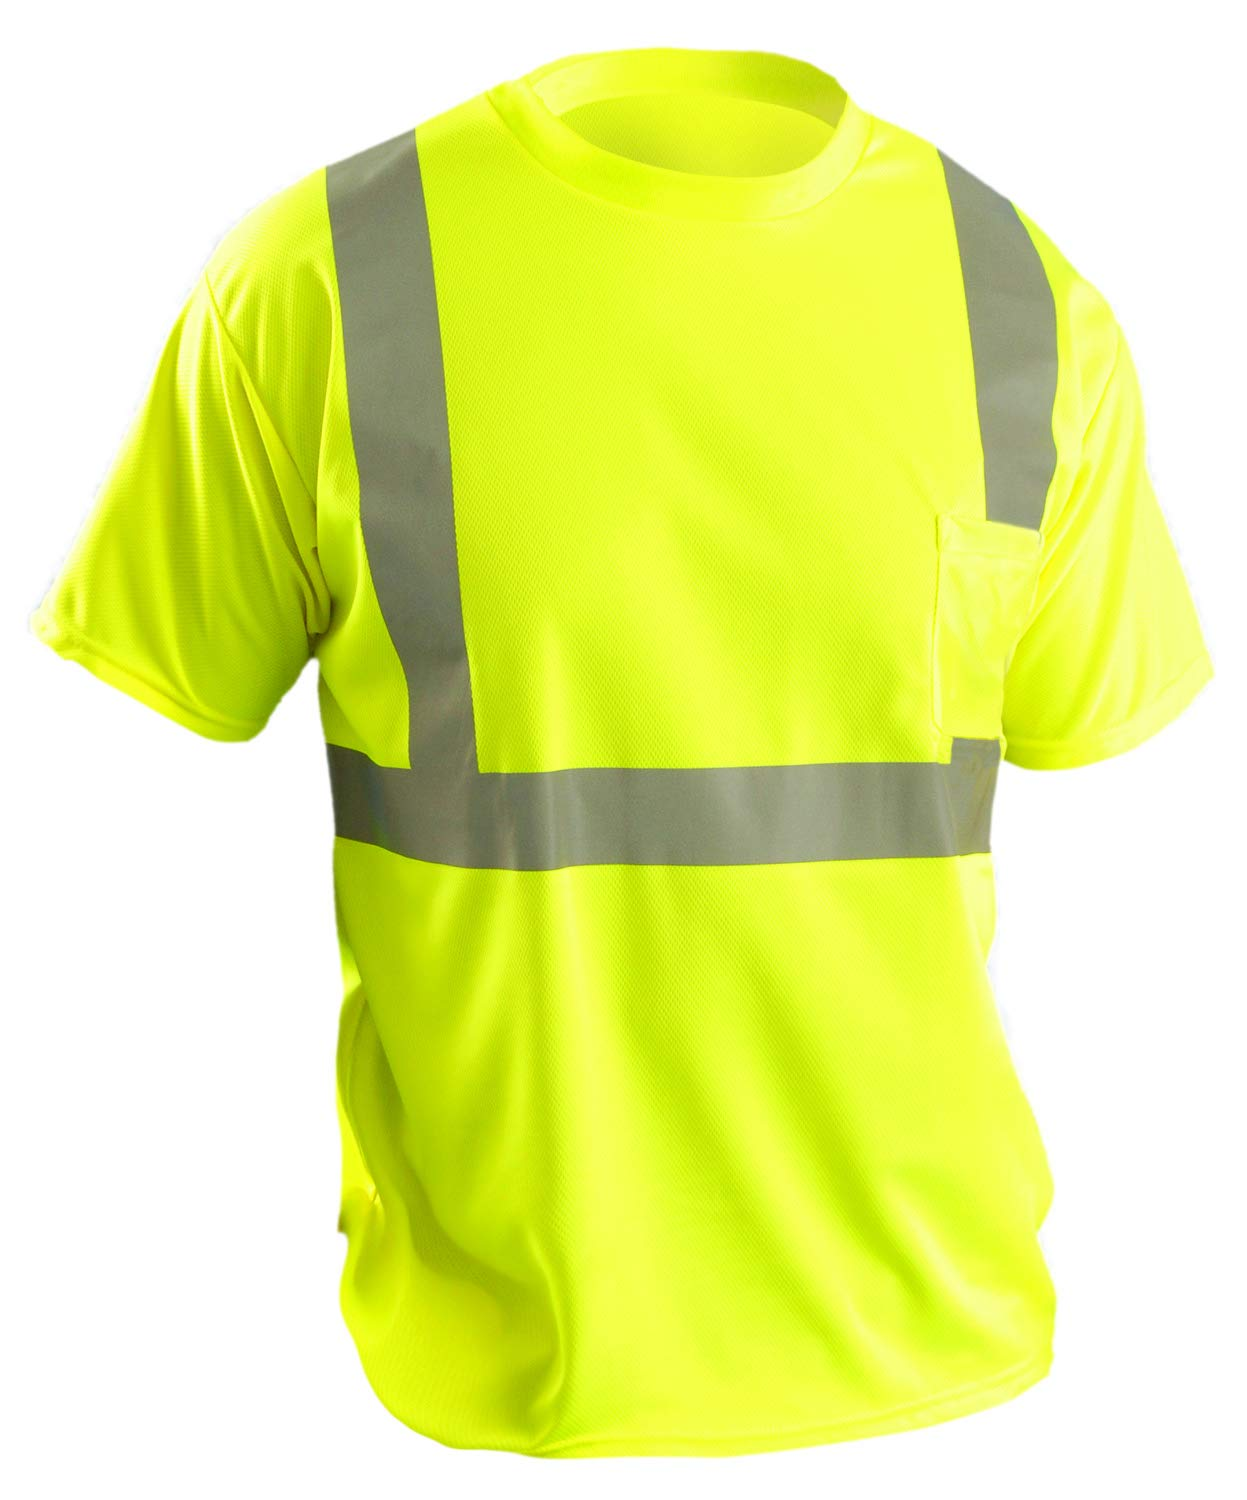 OccuNomix LUX-SSETP2B-Y5X Classic Standard Short Sleeve Wicking Birdseye T-Shirt, Class 2, 100% ANSI Wicking Polyester Birdseye, 5X-Large, Yellow (High Visibility)